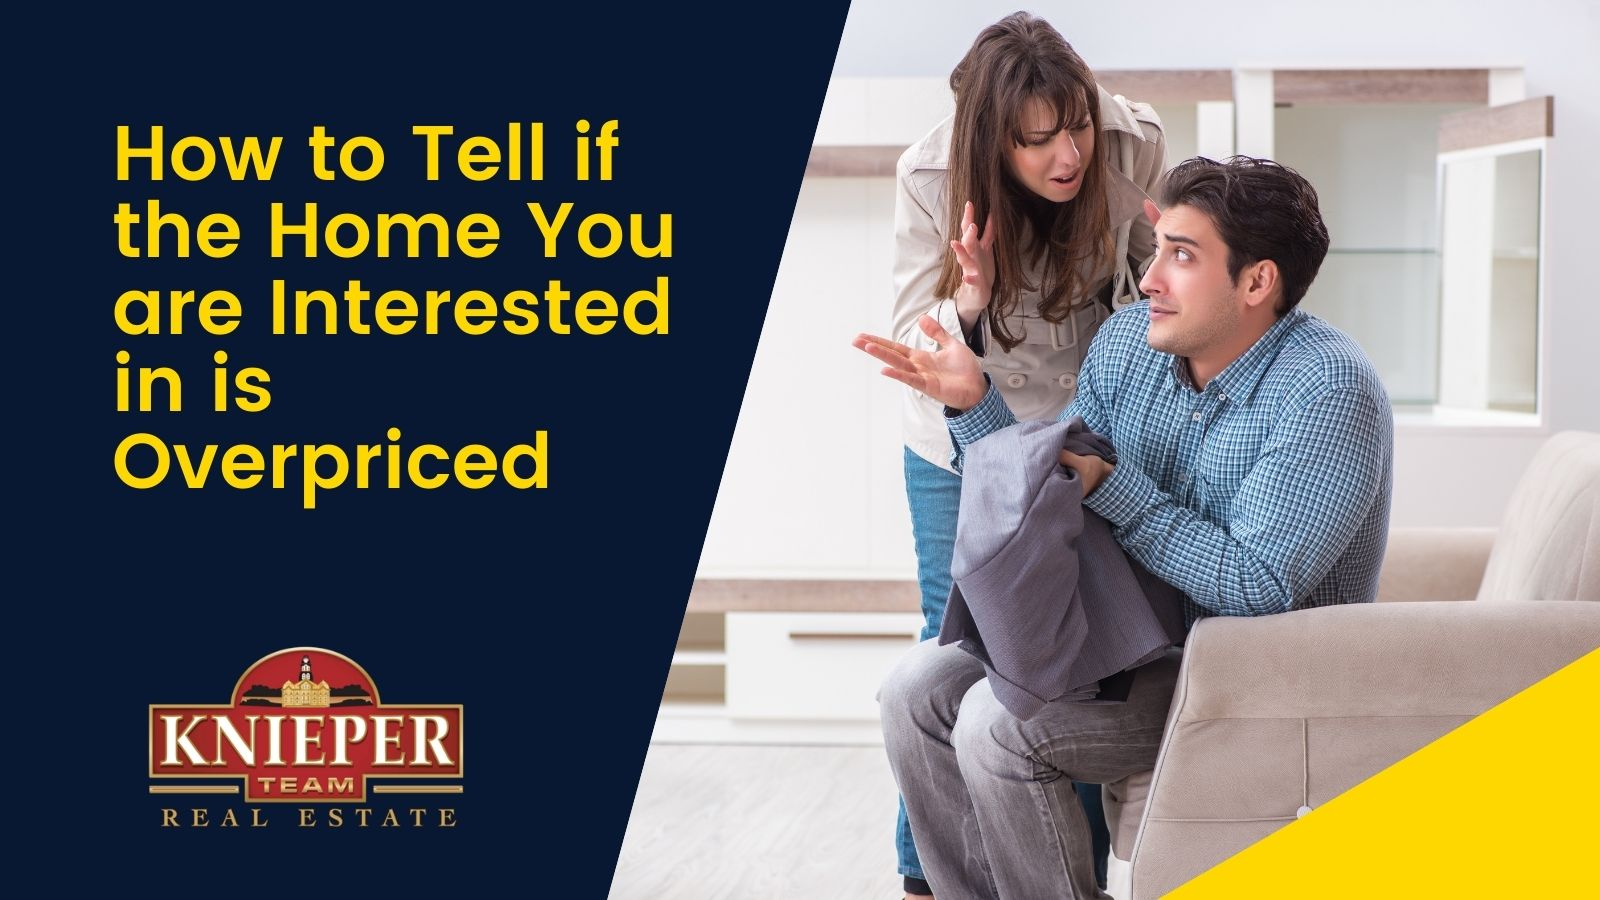 How to Tell if the Home You are Interested in is Overpriced